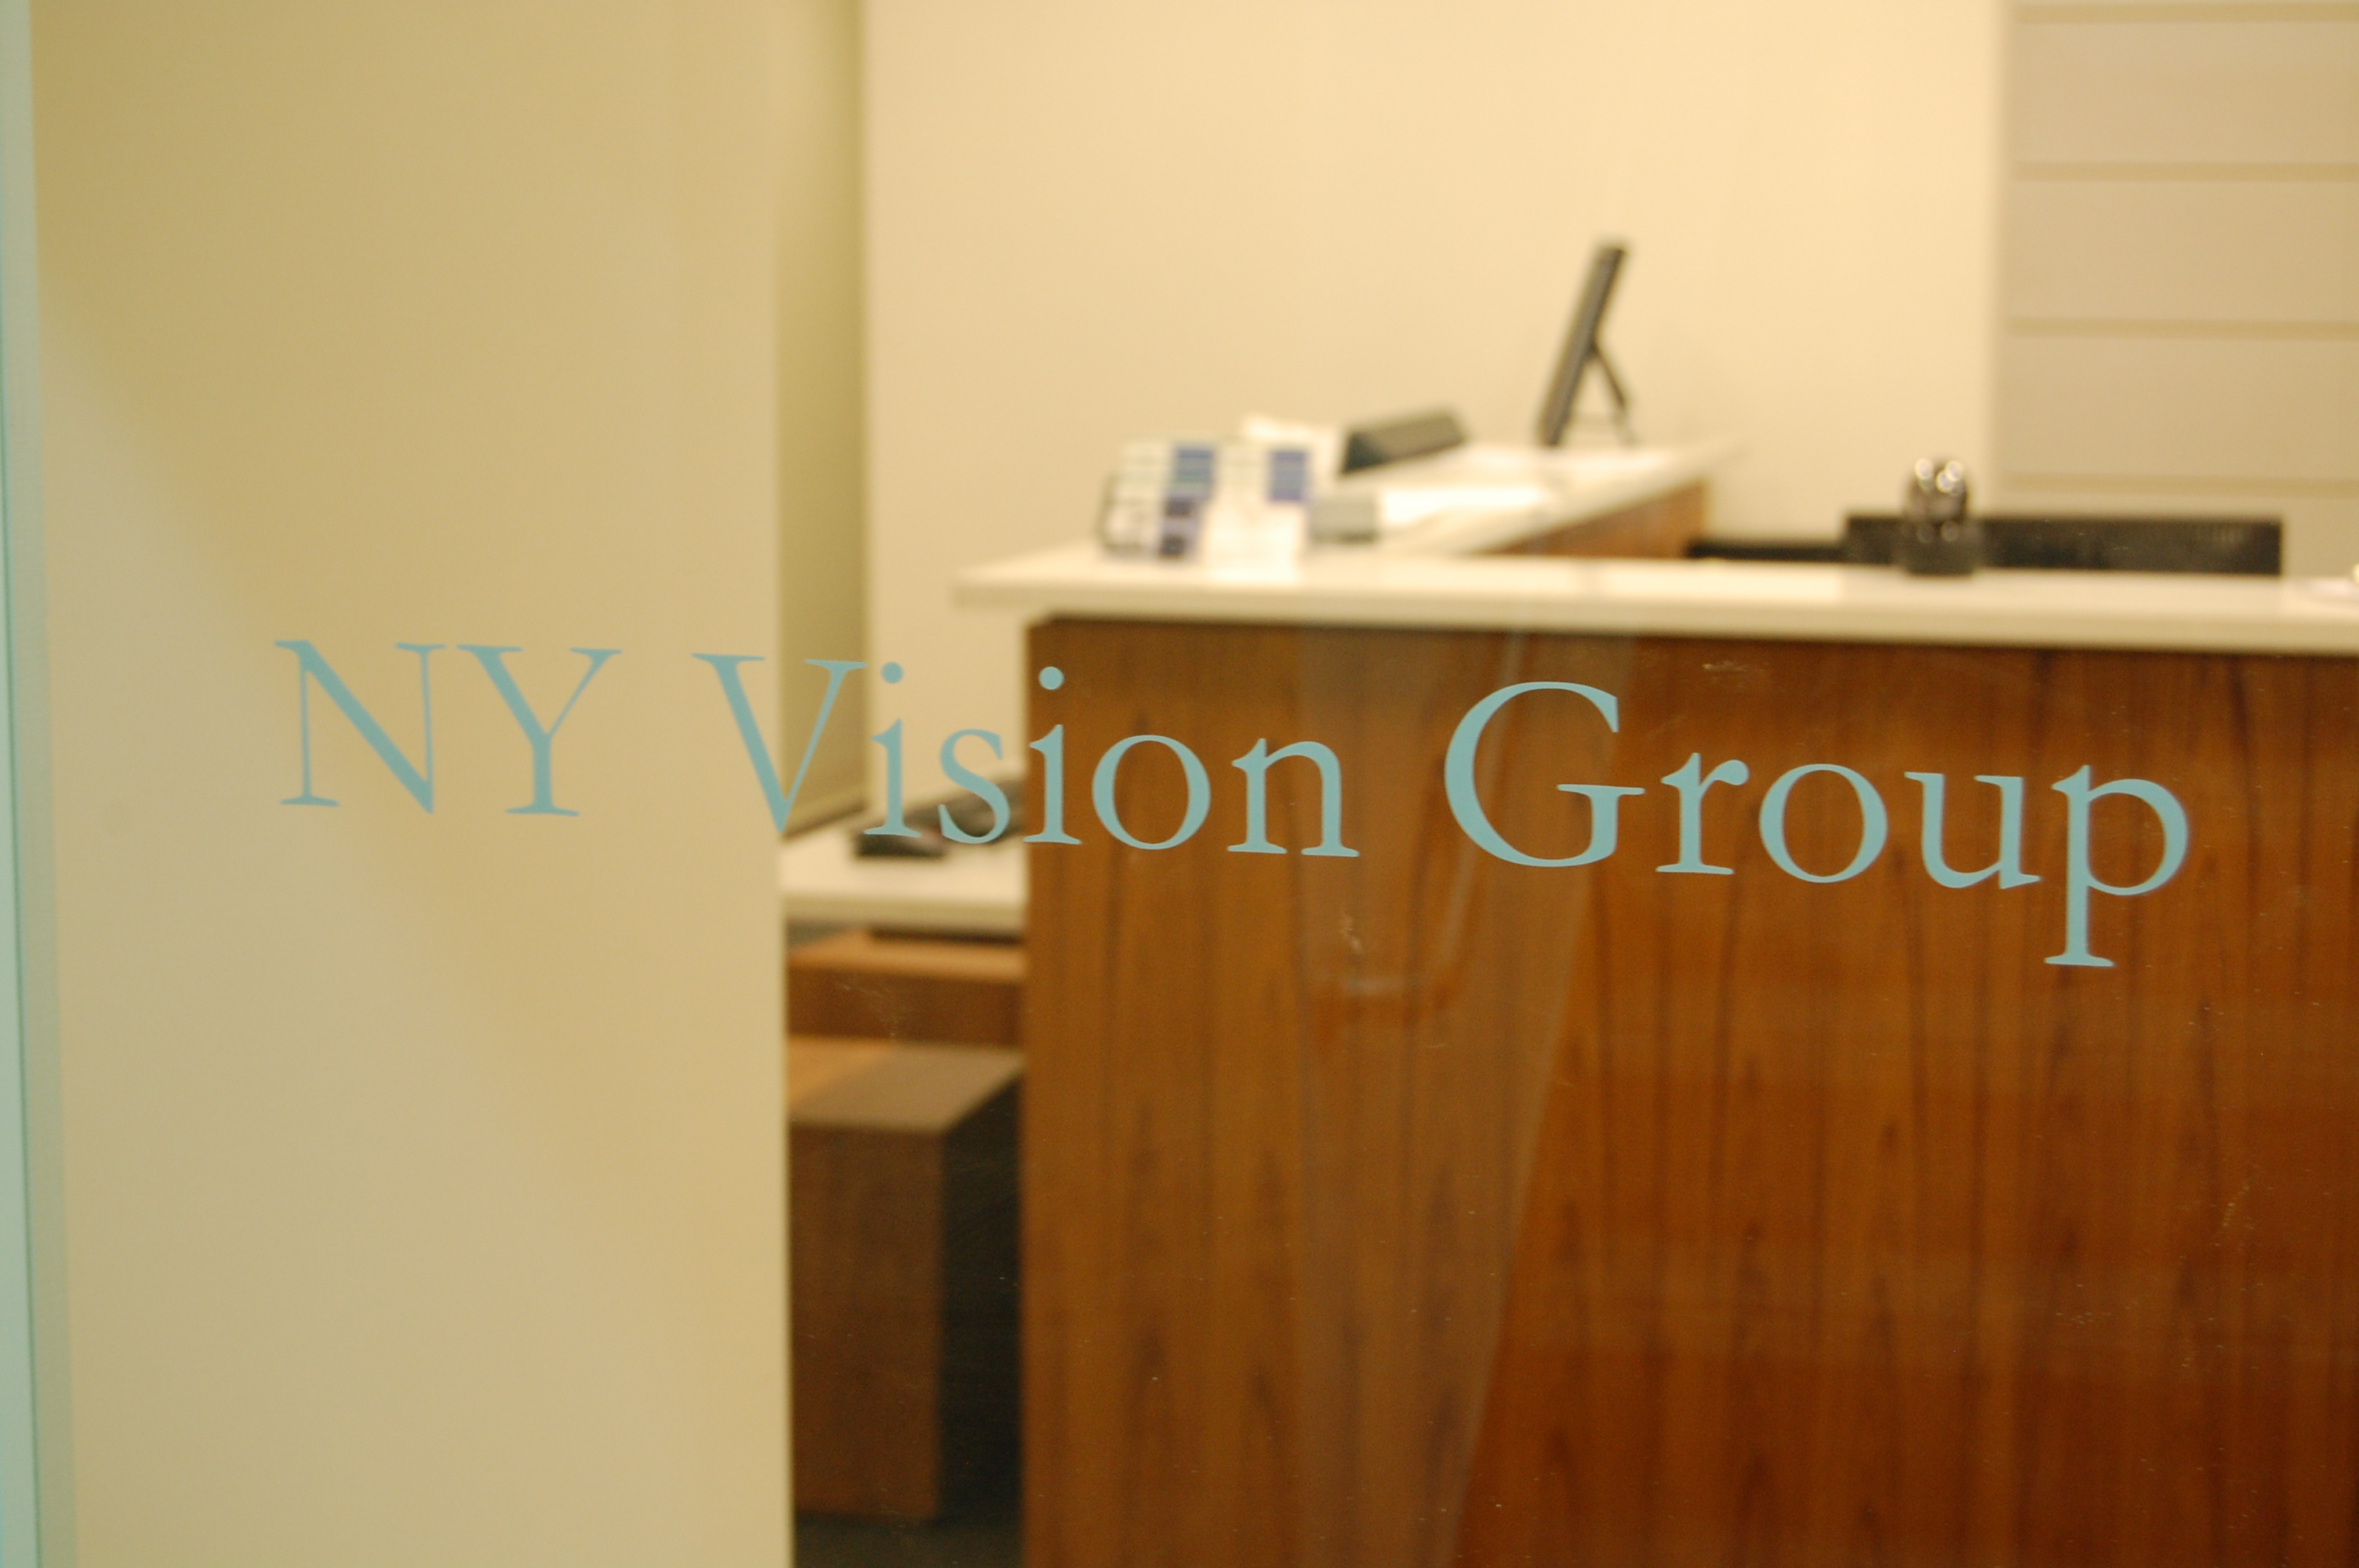 NY Vision Group - Dr. Harry R. Koster, MD